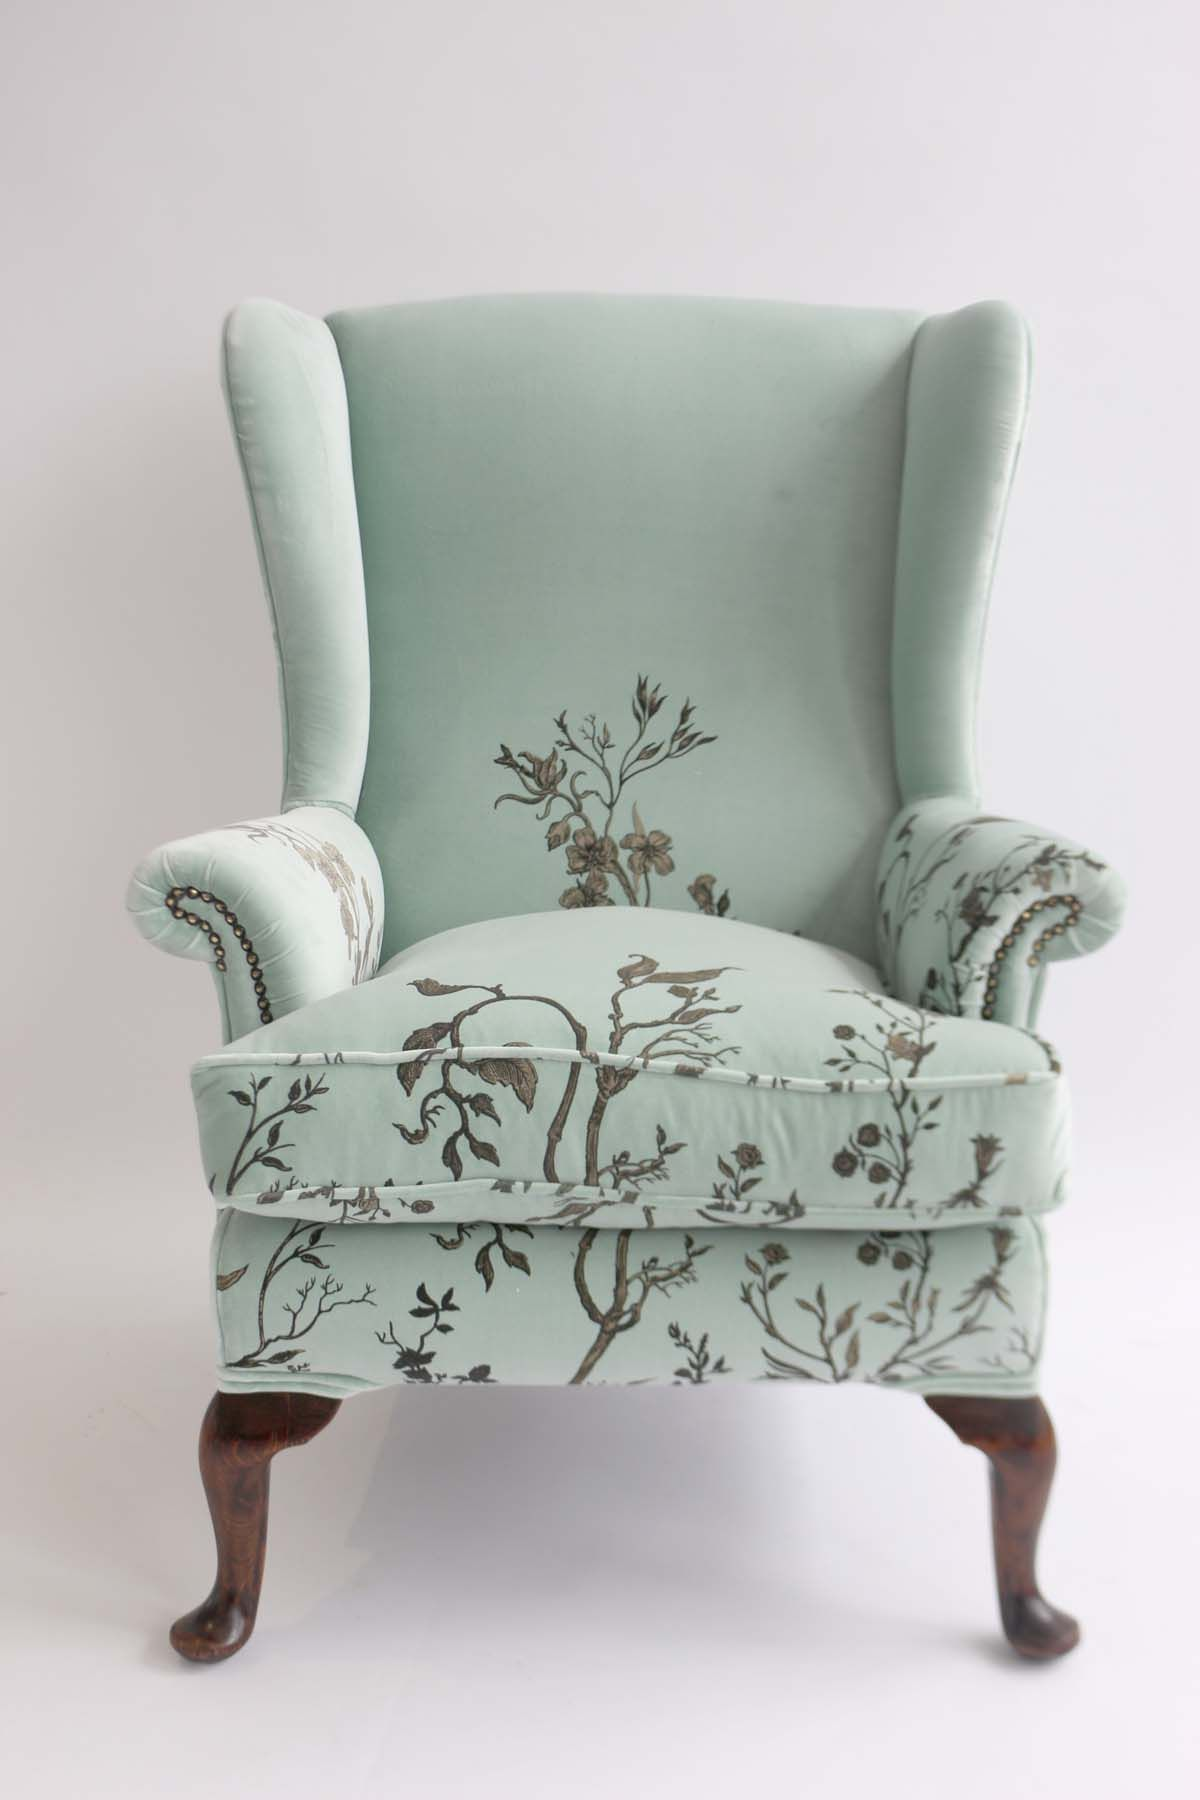 9 unbelievable tricks upholstery patchwork beautiful upholstery how rh pinterest com